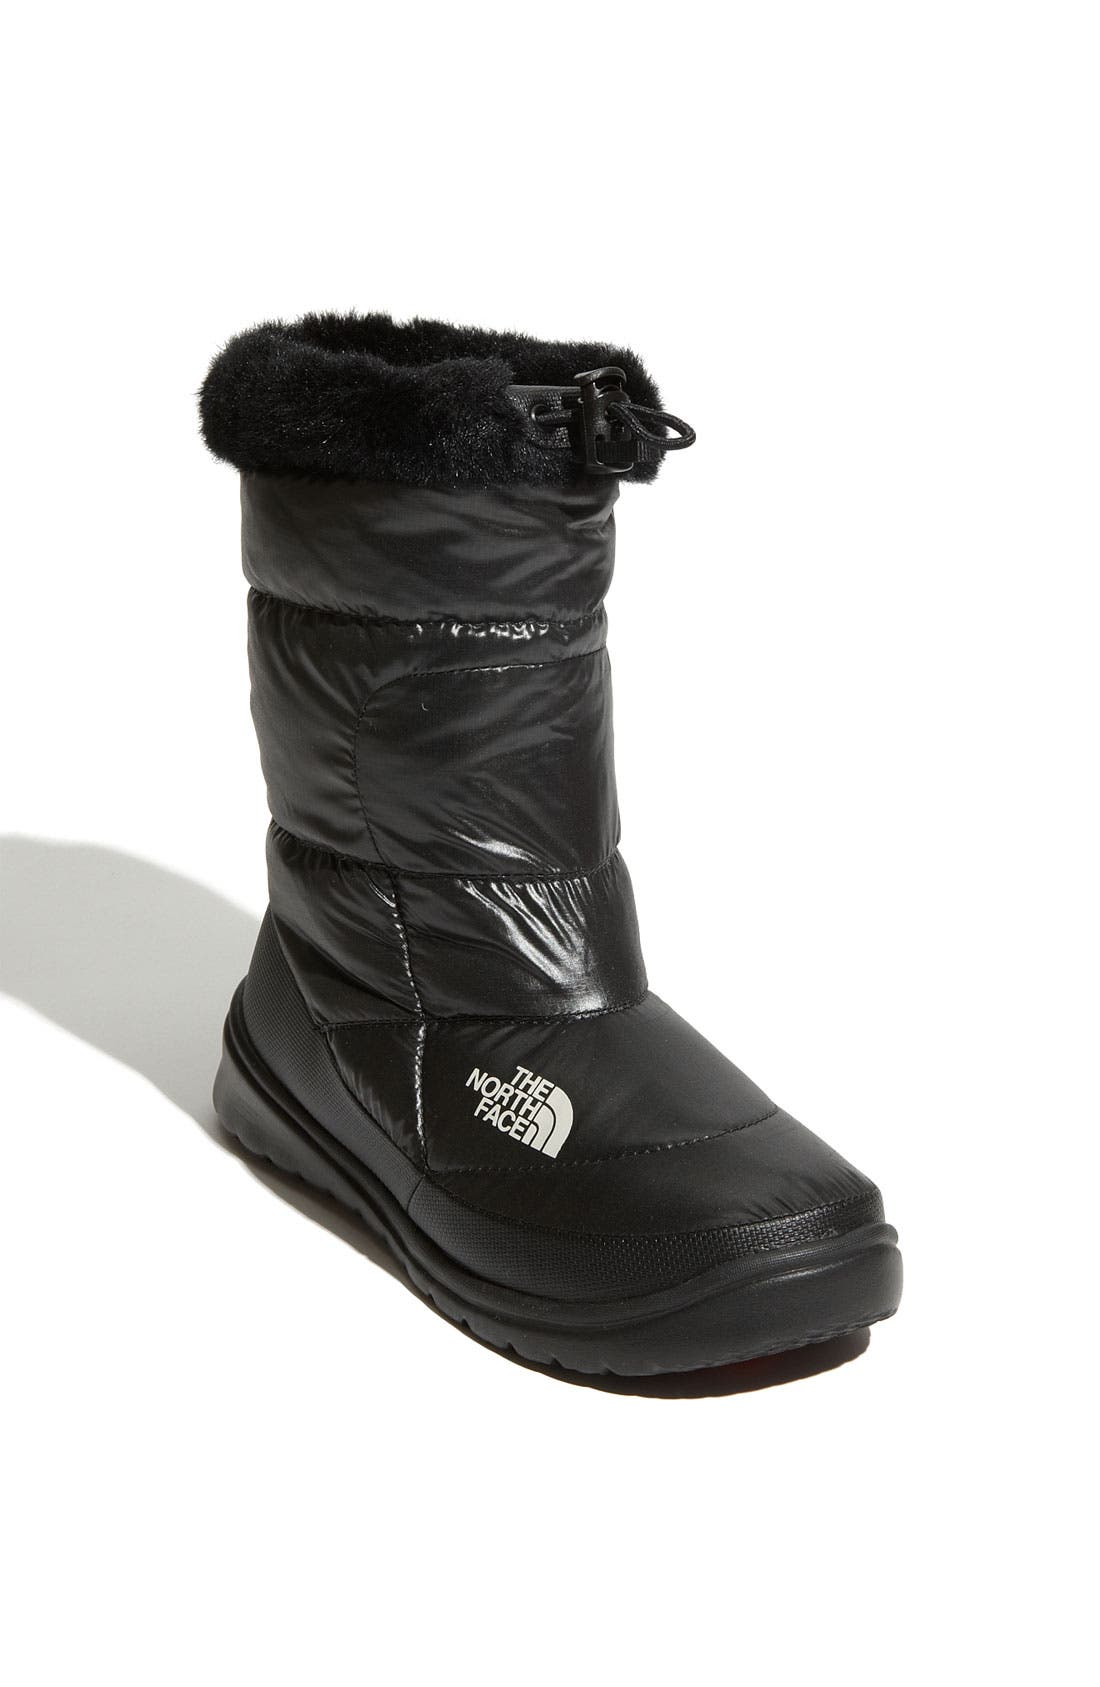 Alternate Image 1 Selected - The North Face 'Nuptse Fur IV' Bootie